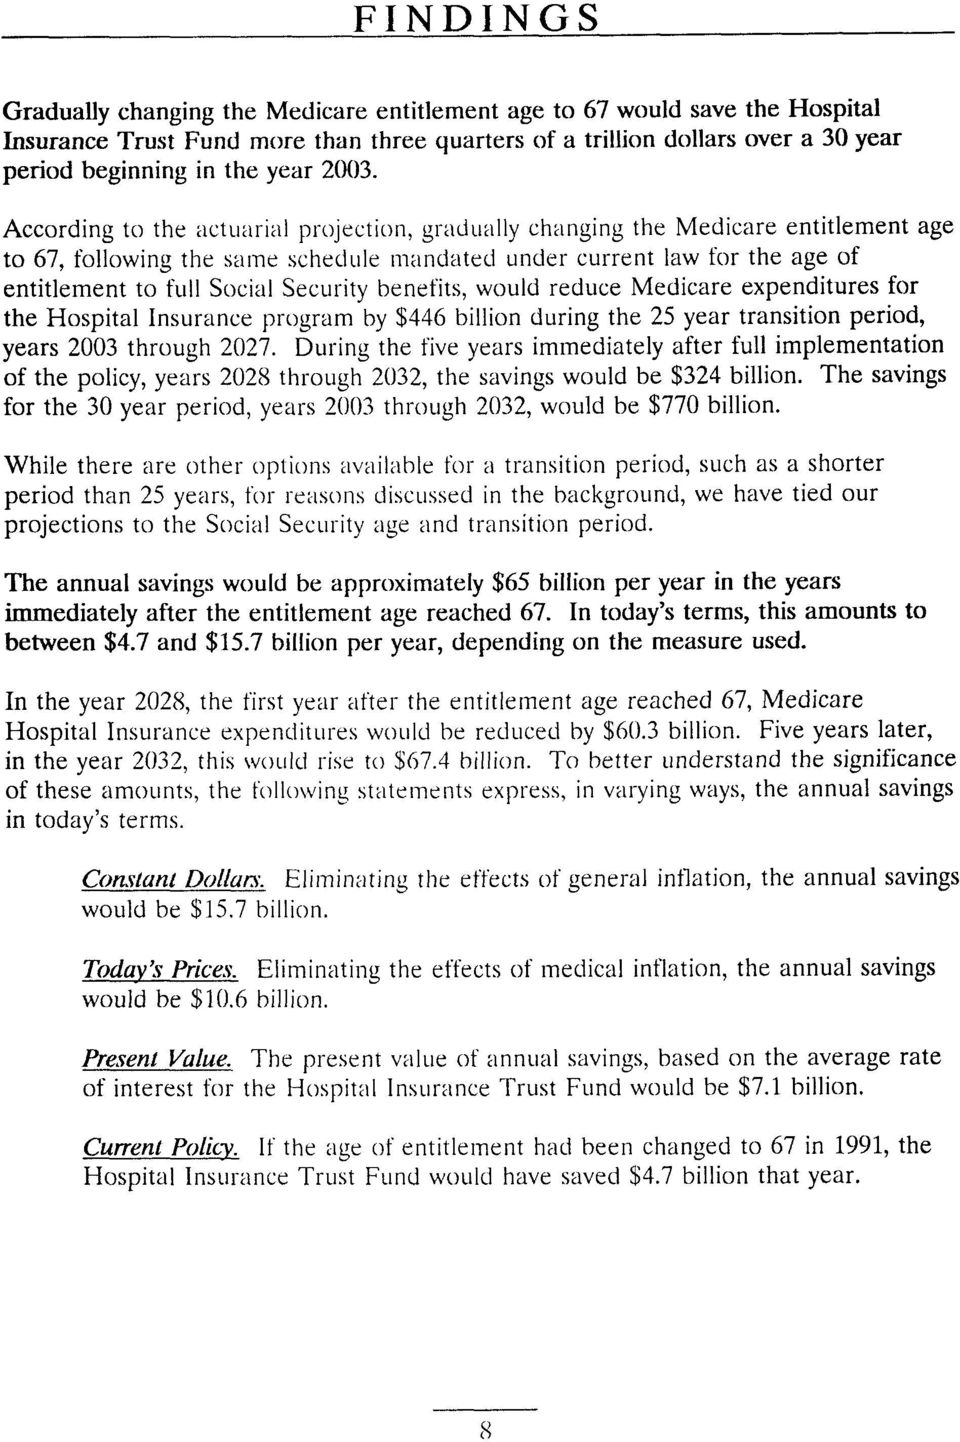 Security benefits, would reduce Medicare expenditures for the Hospital Insurance program by $446 billion during the 25 year transition period, years 2003 through 2027.